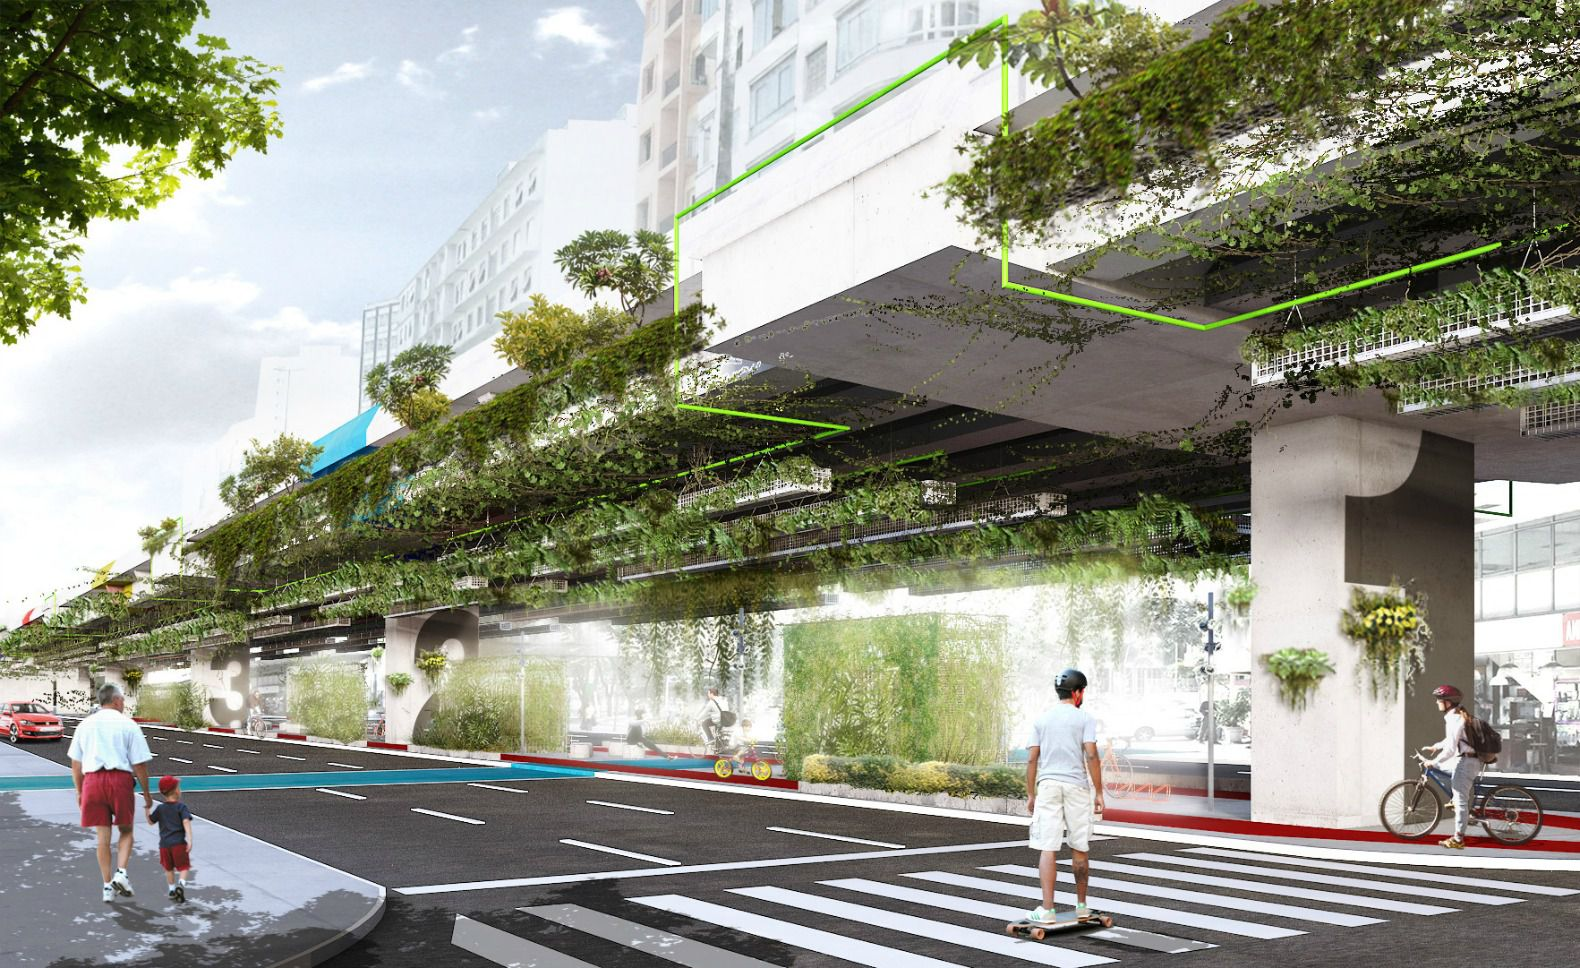 Hanging highway garden in Sao Paolo reduce 20% of carbon emissions